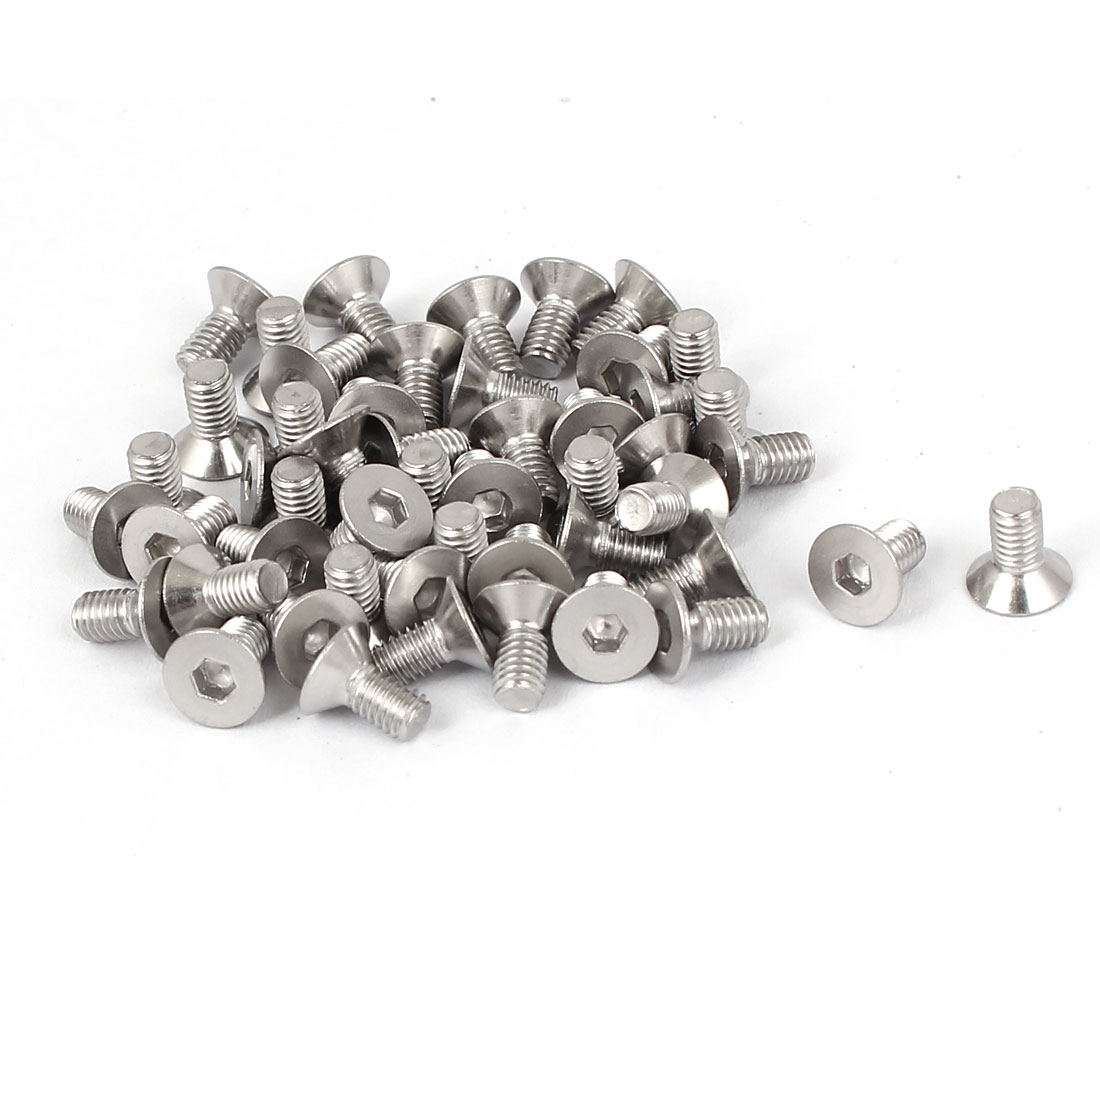 M3x6mm Stainless Steel Hex Socket Flat Head Countersunk Bolts Screw 50pcs